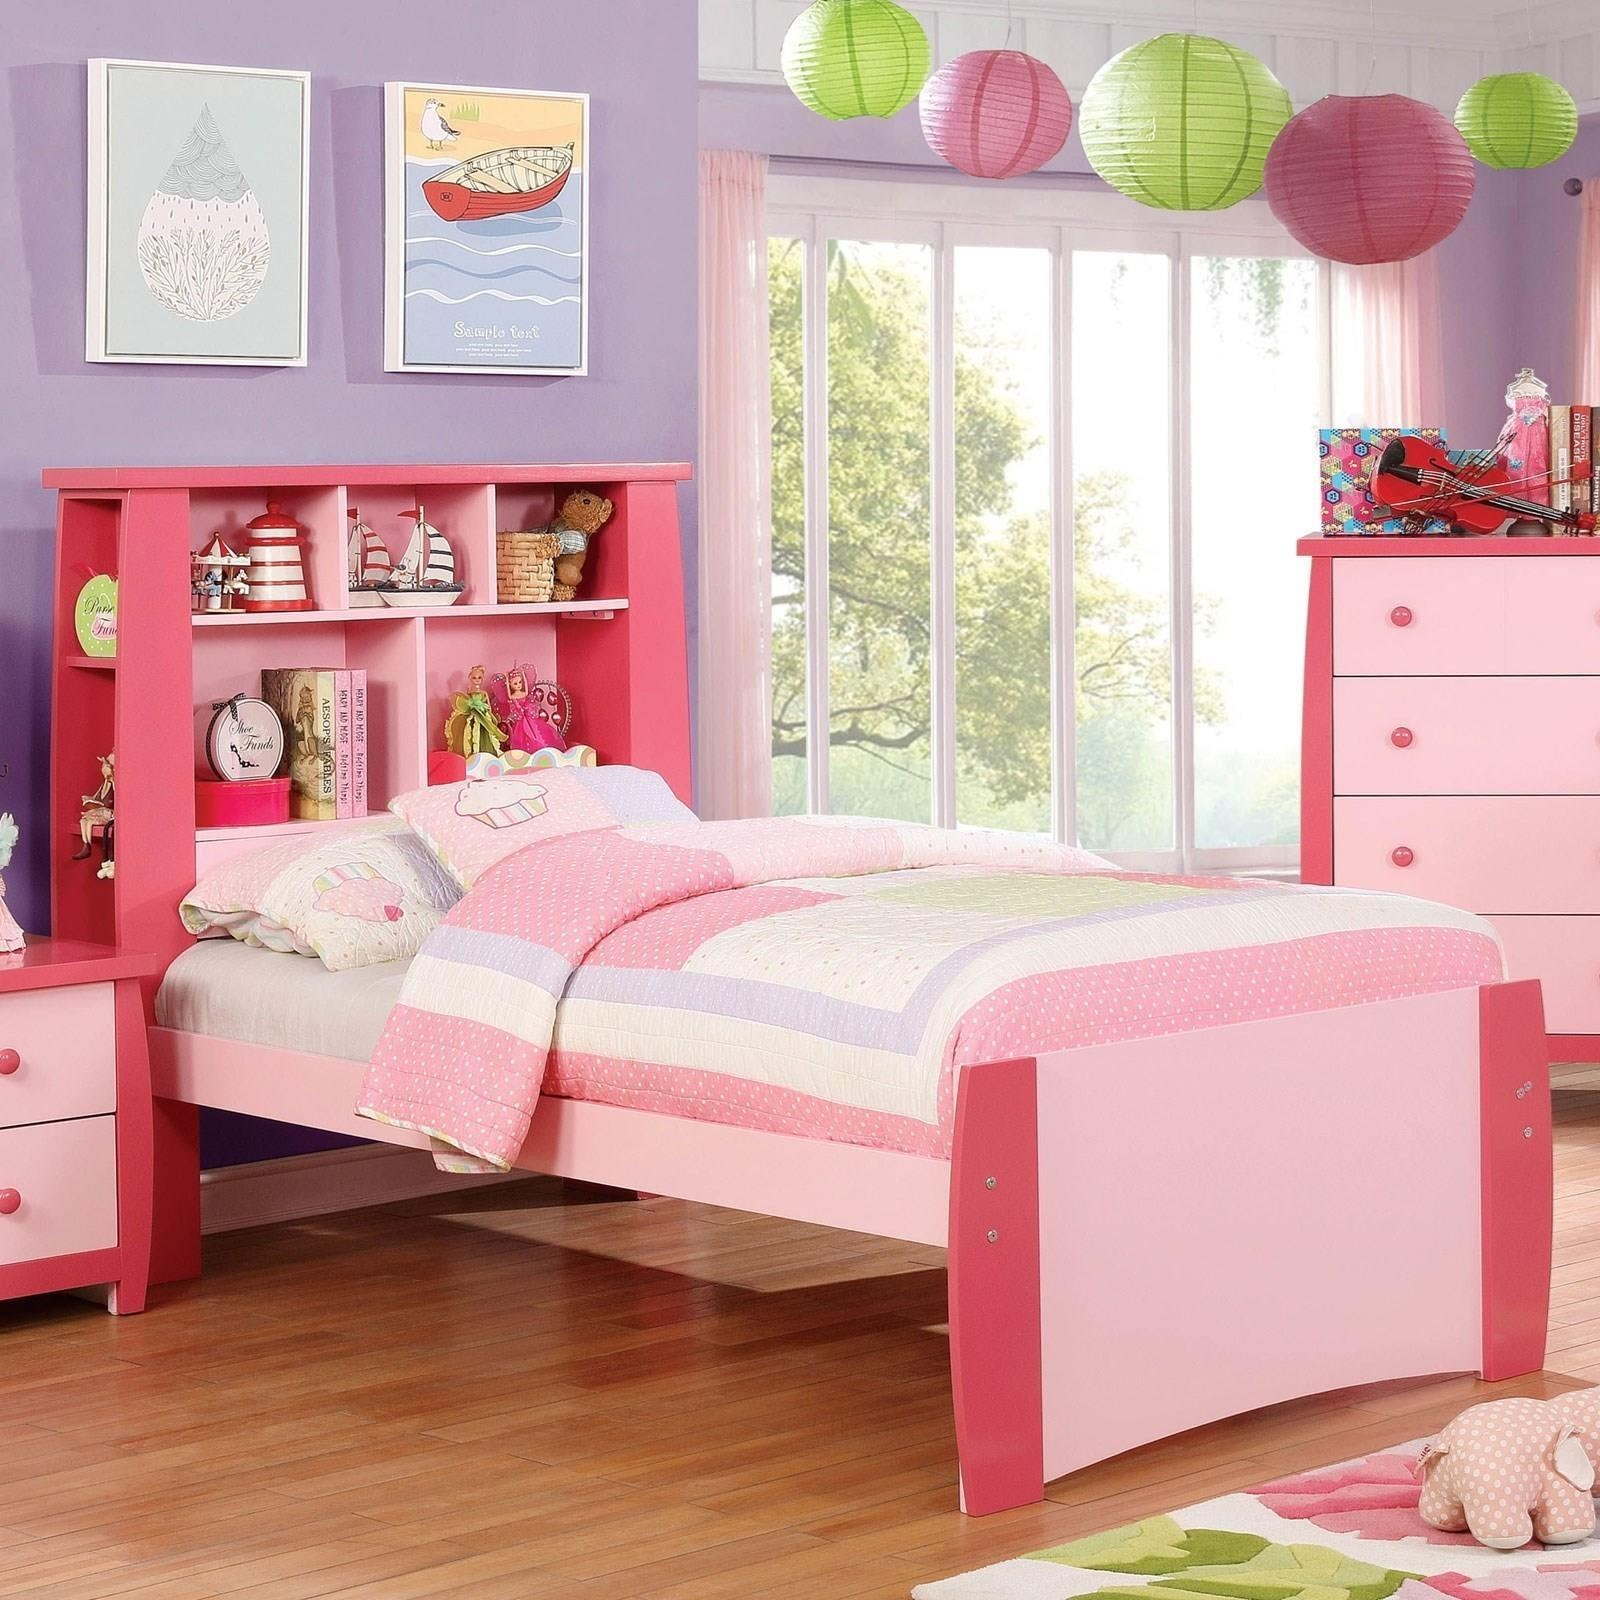 Marlee Twin Bed by Furniture of America at Nassau Furniture and Mattress